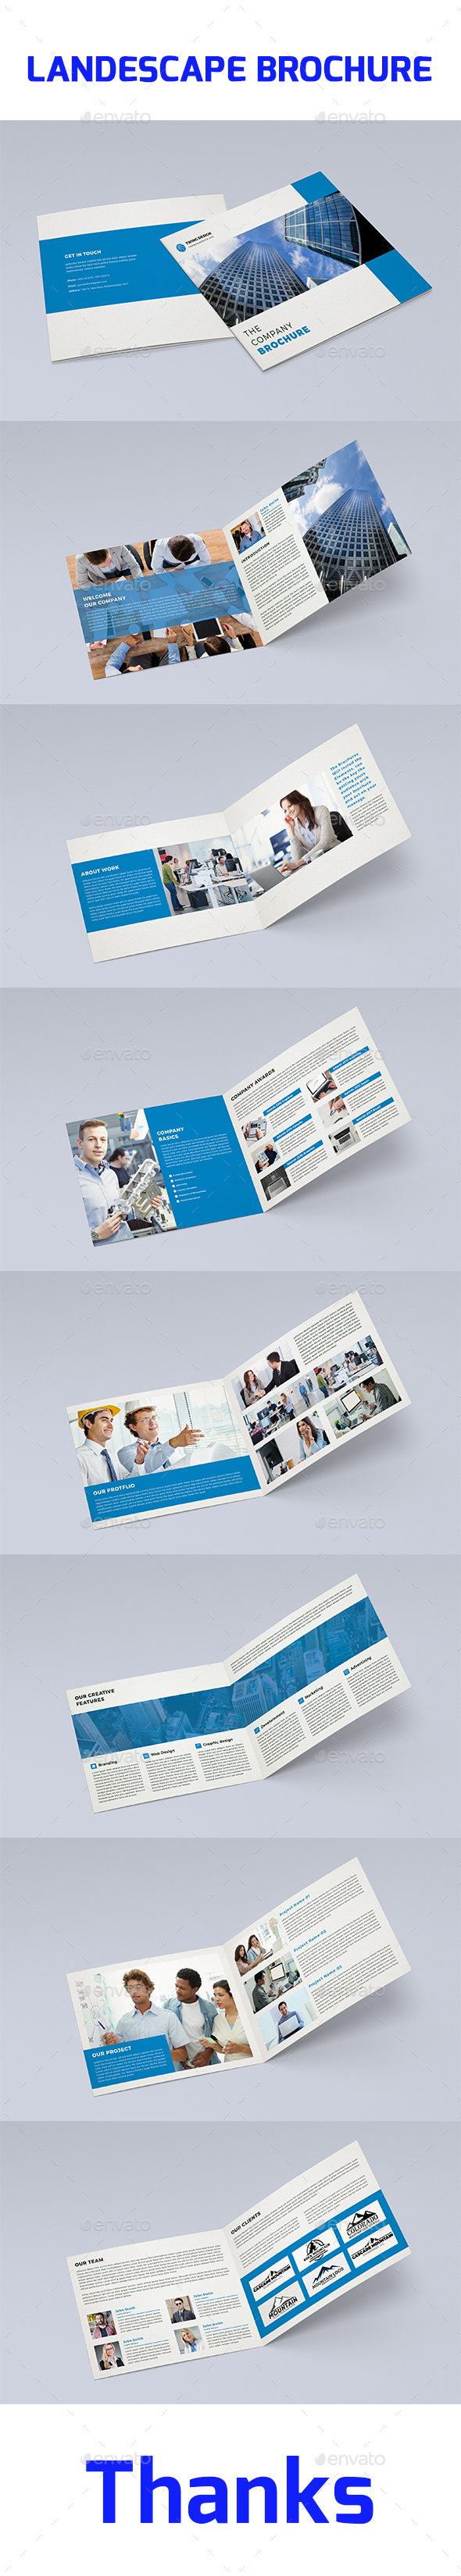 Brochure Indesign Tamplate - Brochures Print Templates